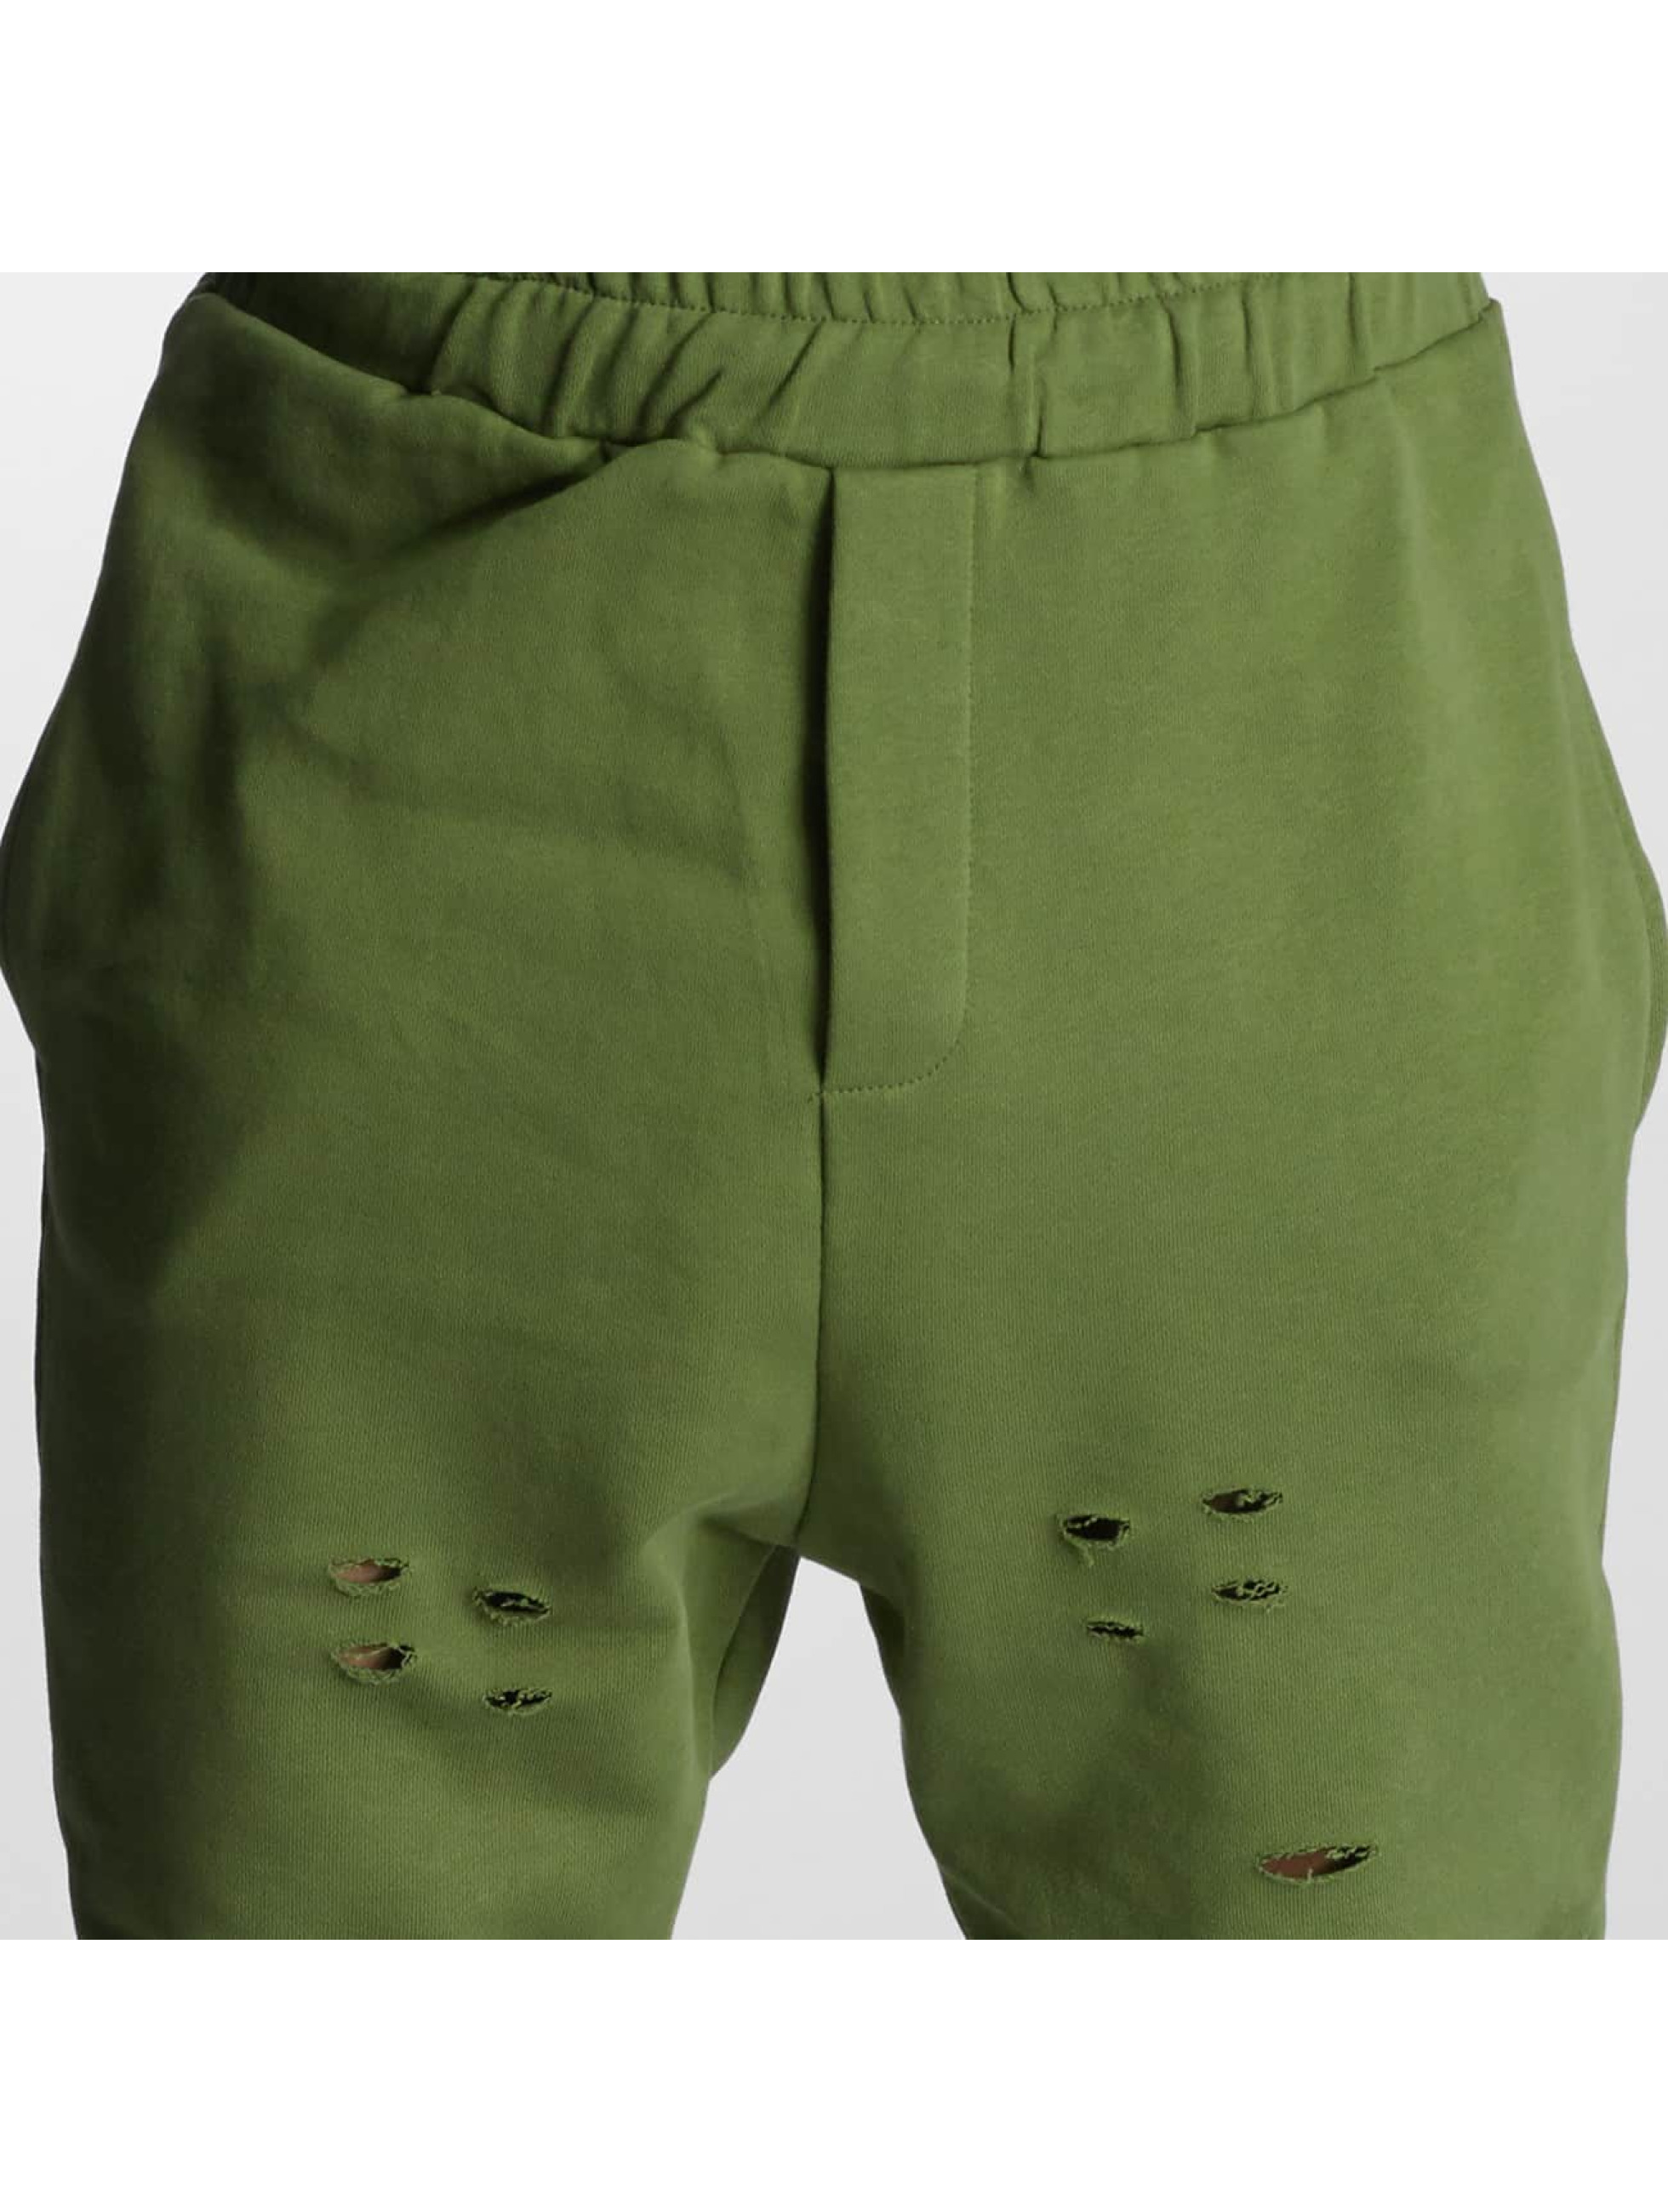 DEF joggingbroek Destroyed olijfgroen